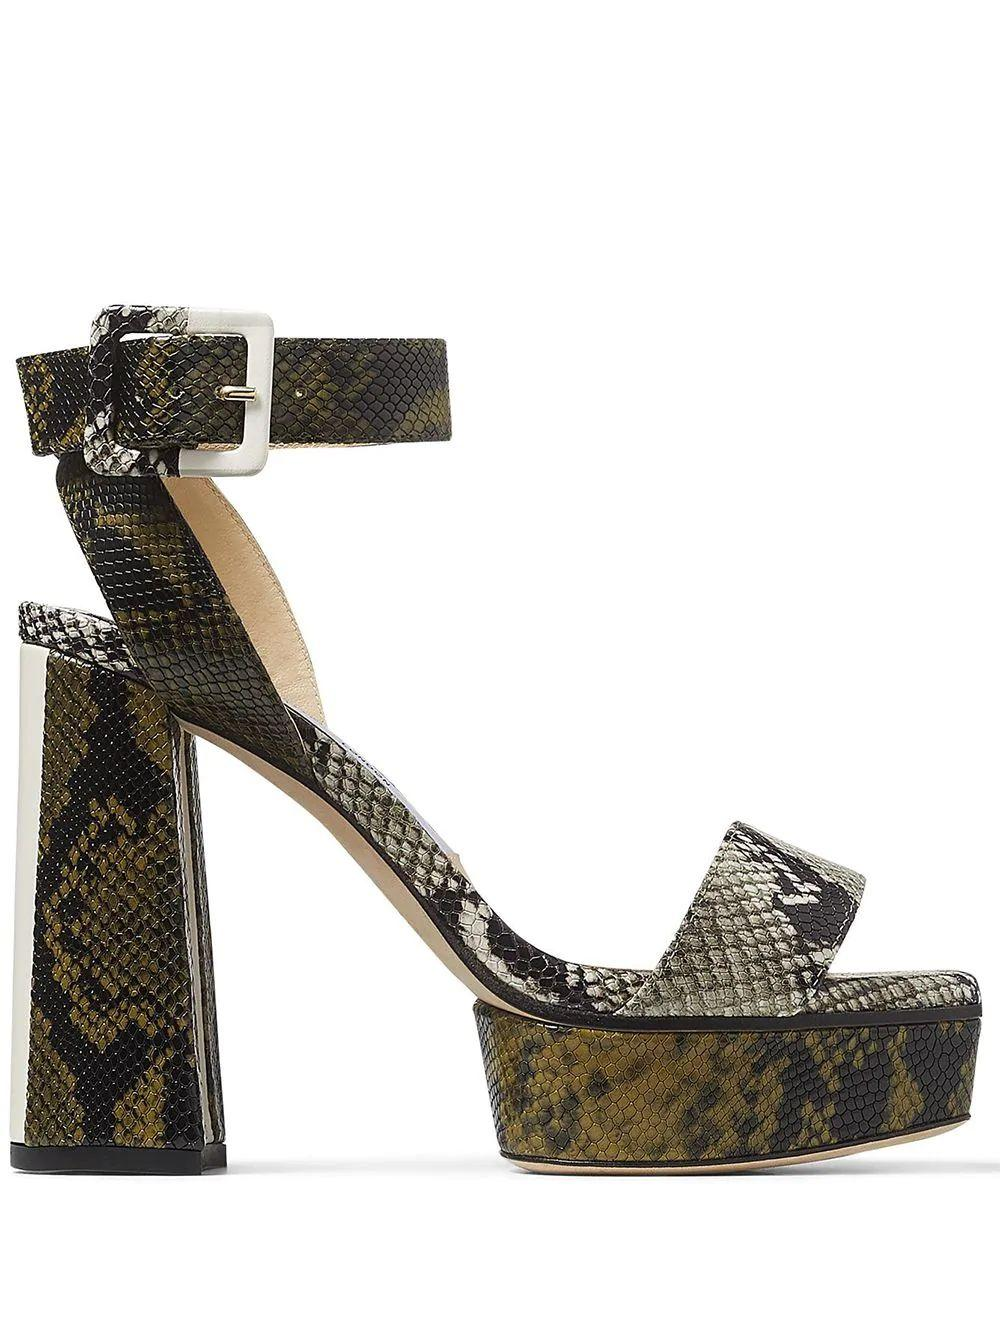 Jax 115mm Snakeskin Platform Sandals